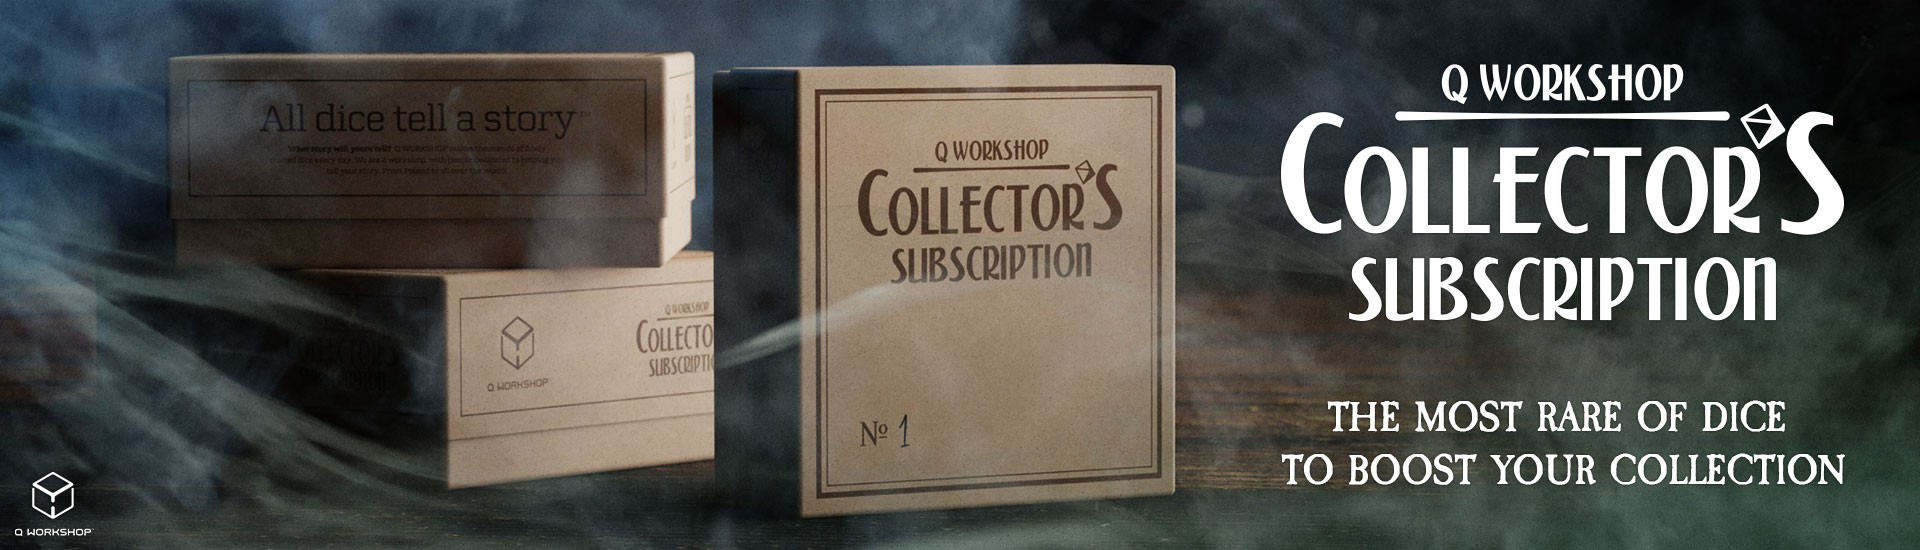 Collector's Subscription